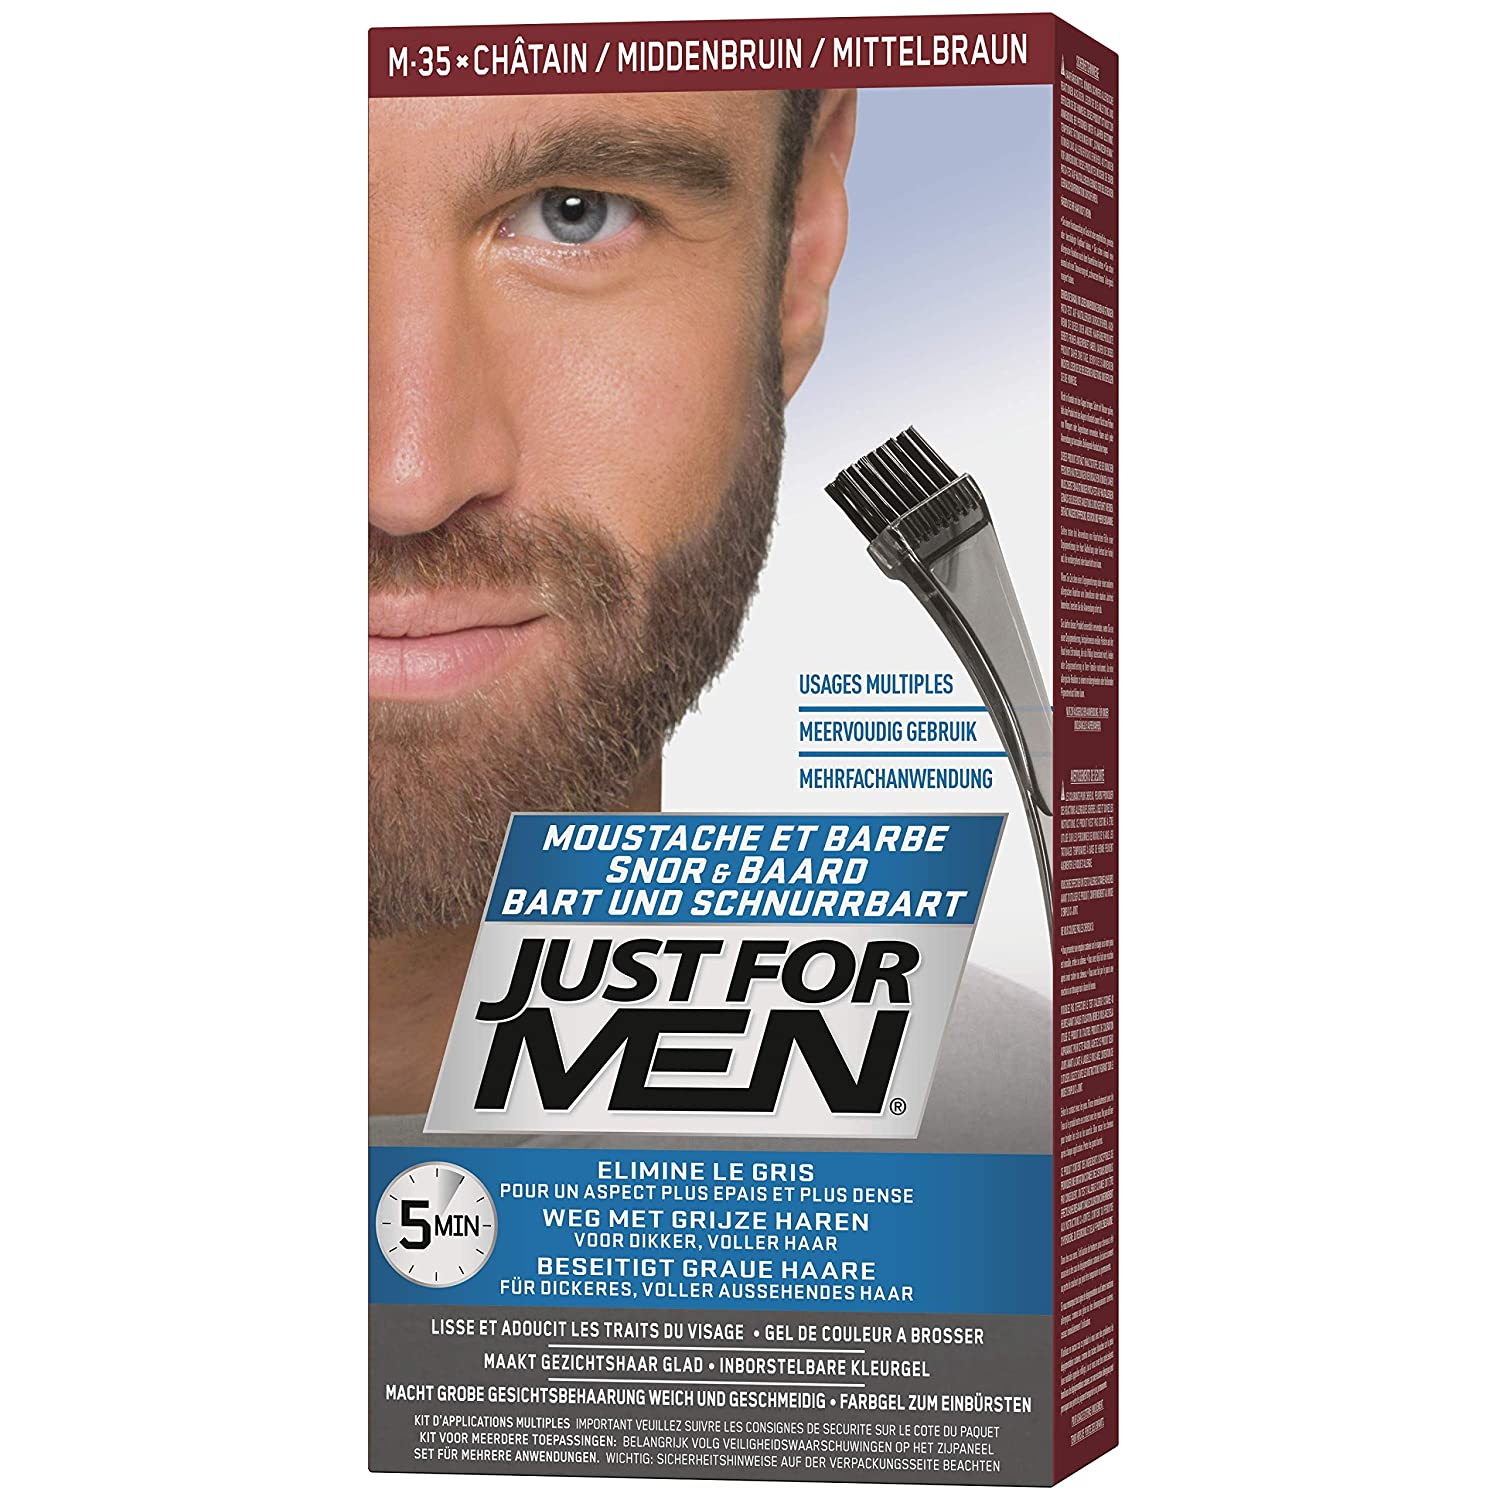 Just For Men - M35 - Moustache and Beard Facial Hair Color - Medium ...